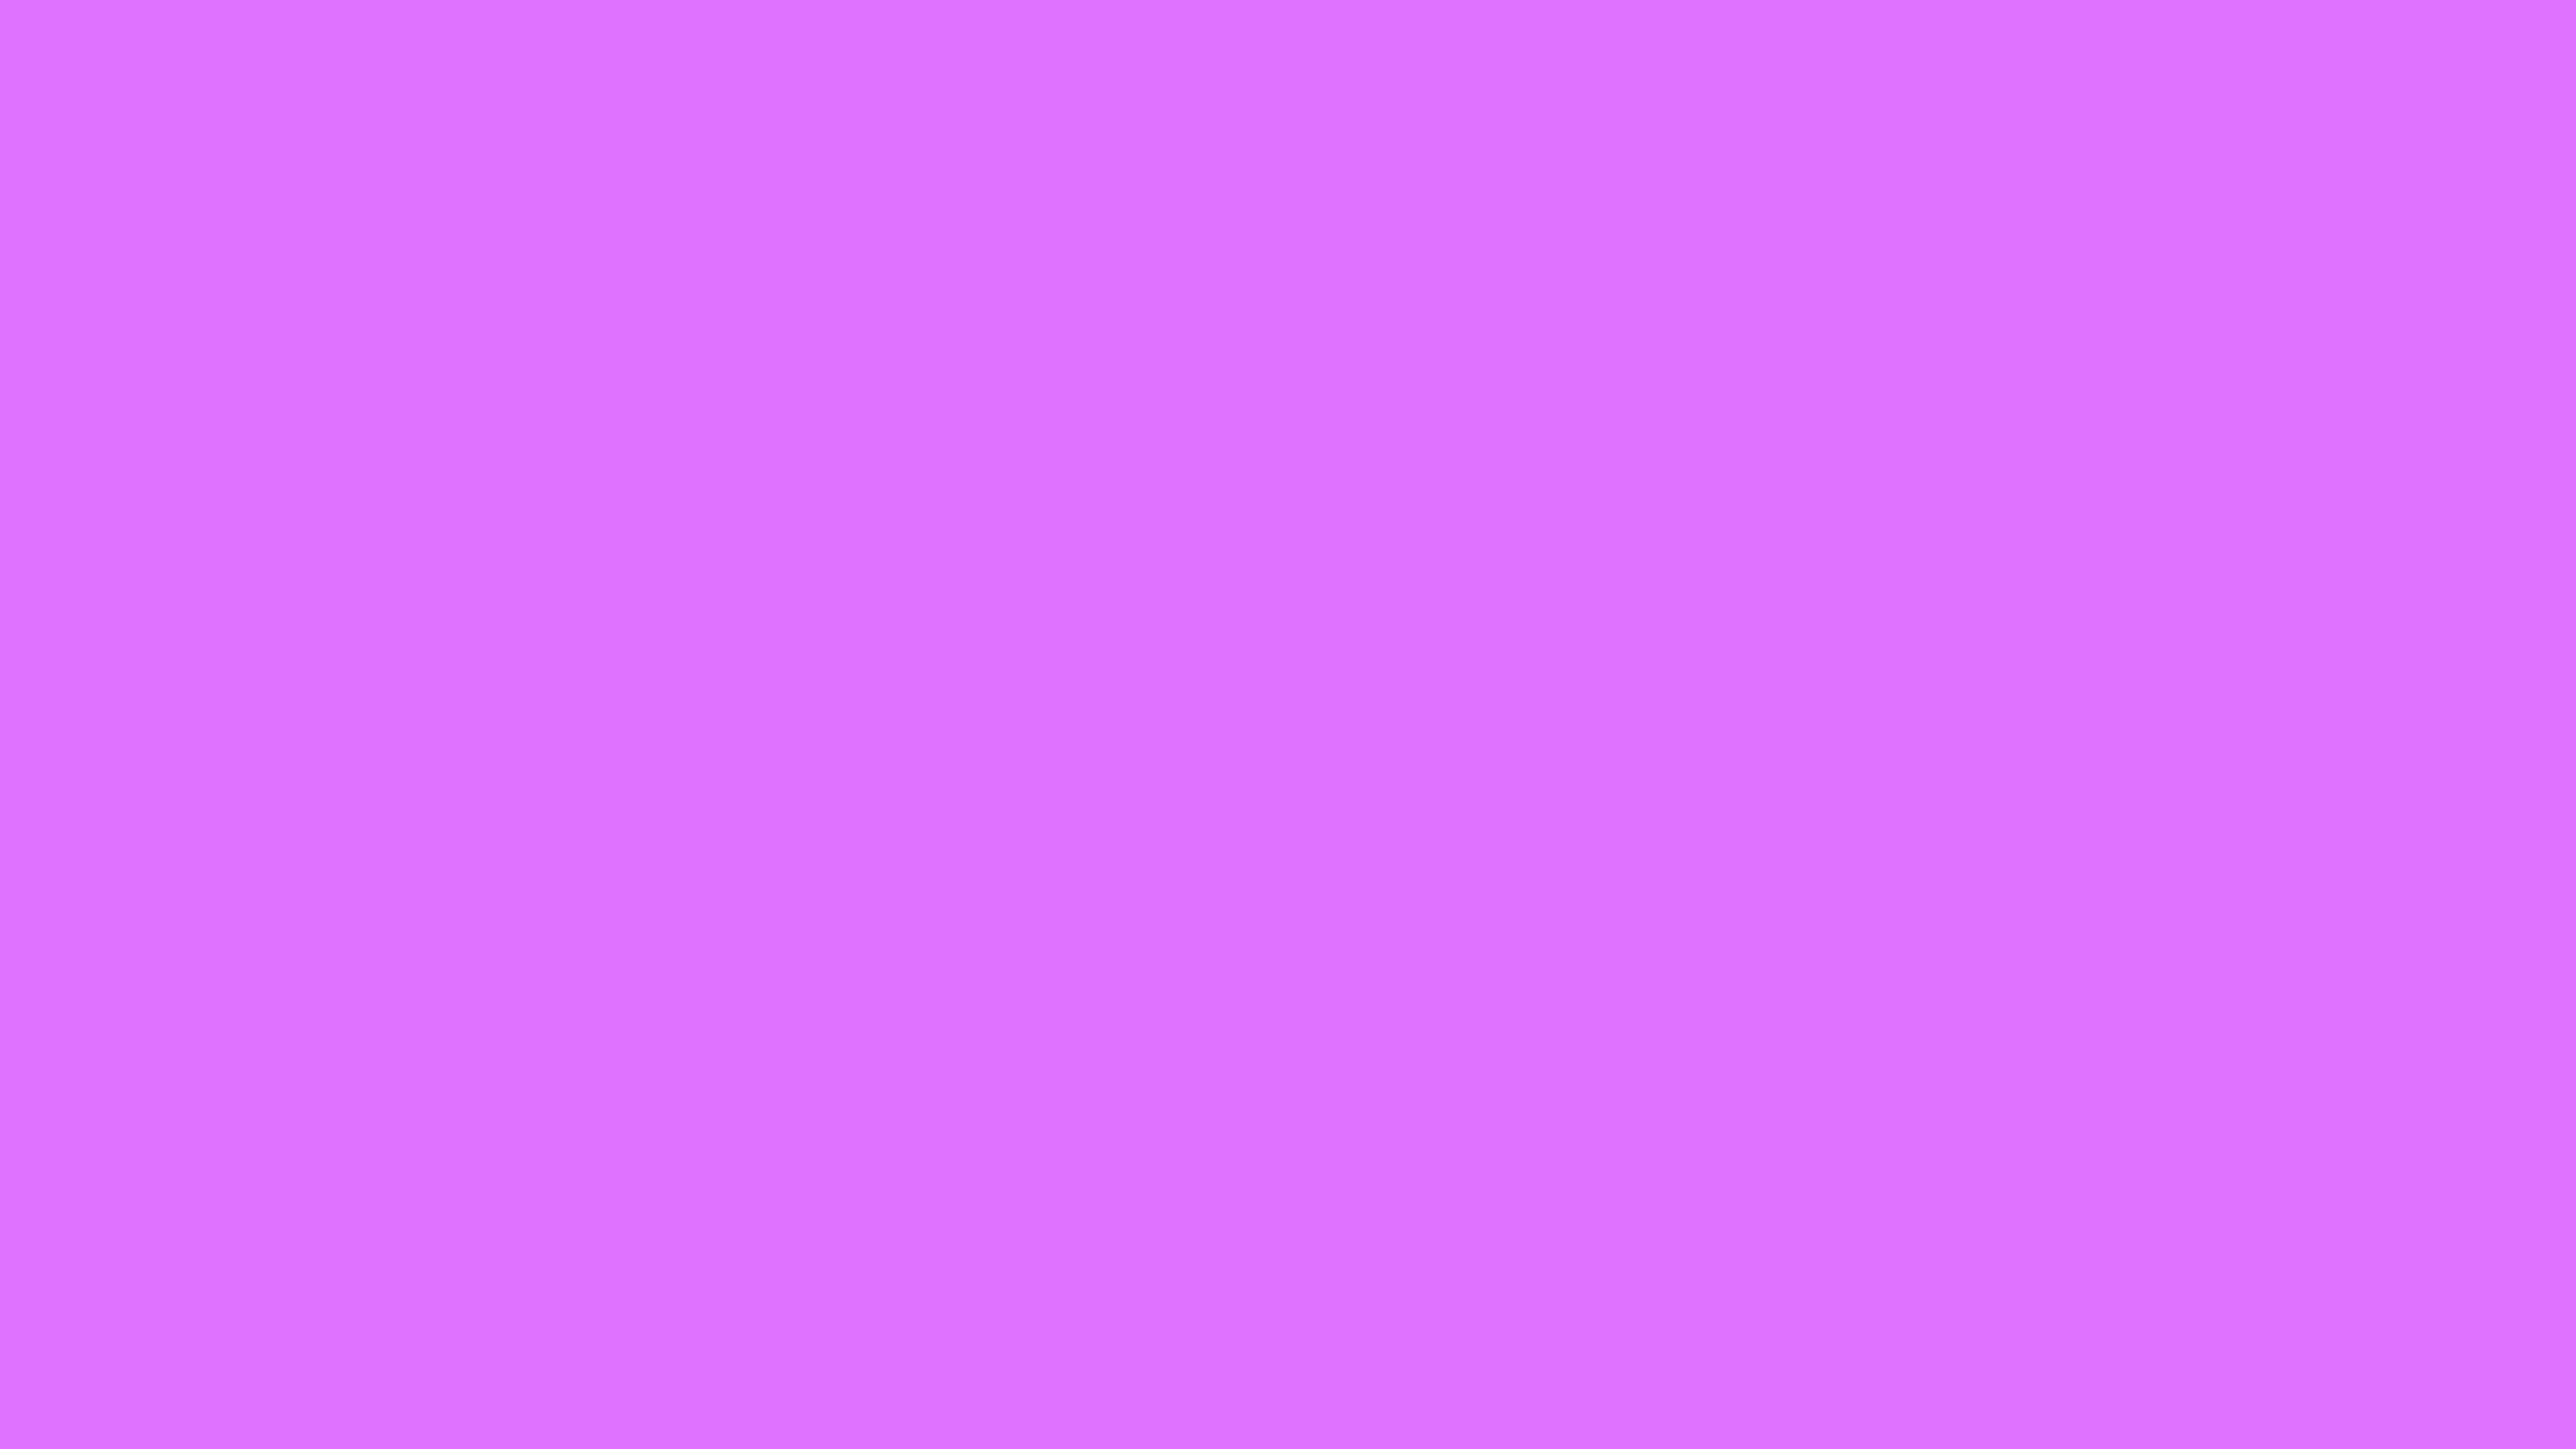 4096x2304 Heliotrope Solid Color Background